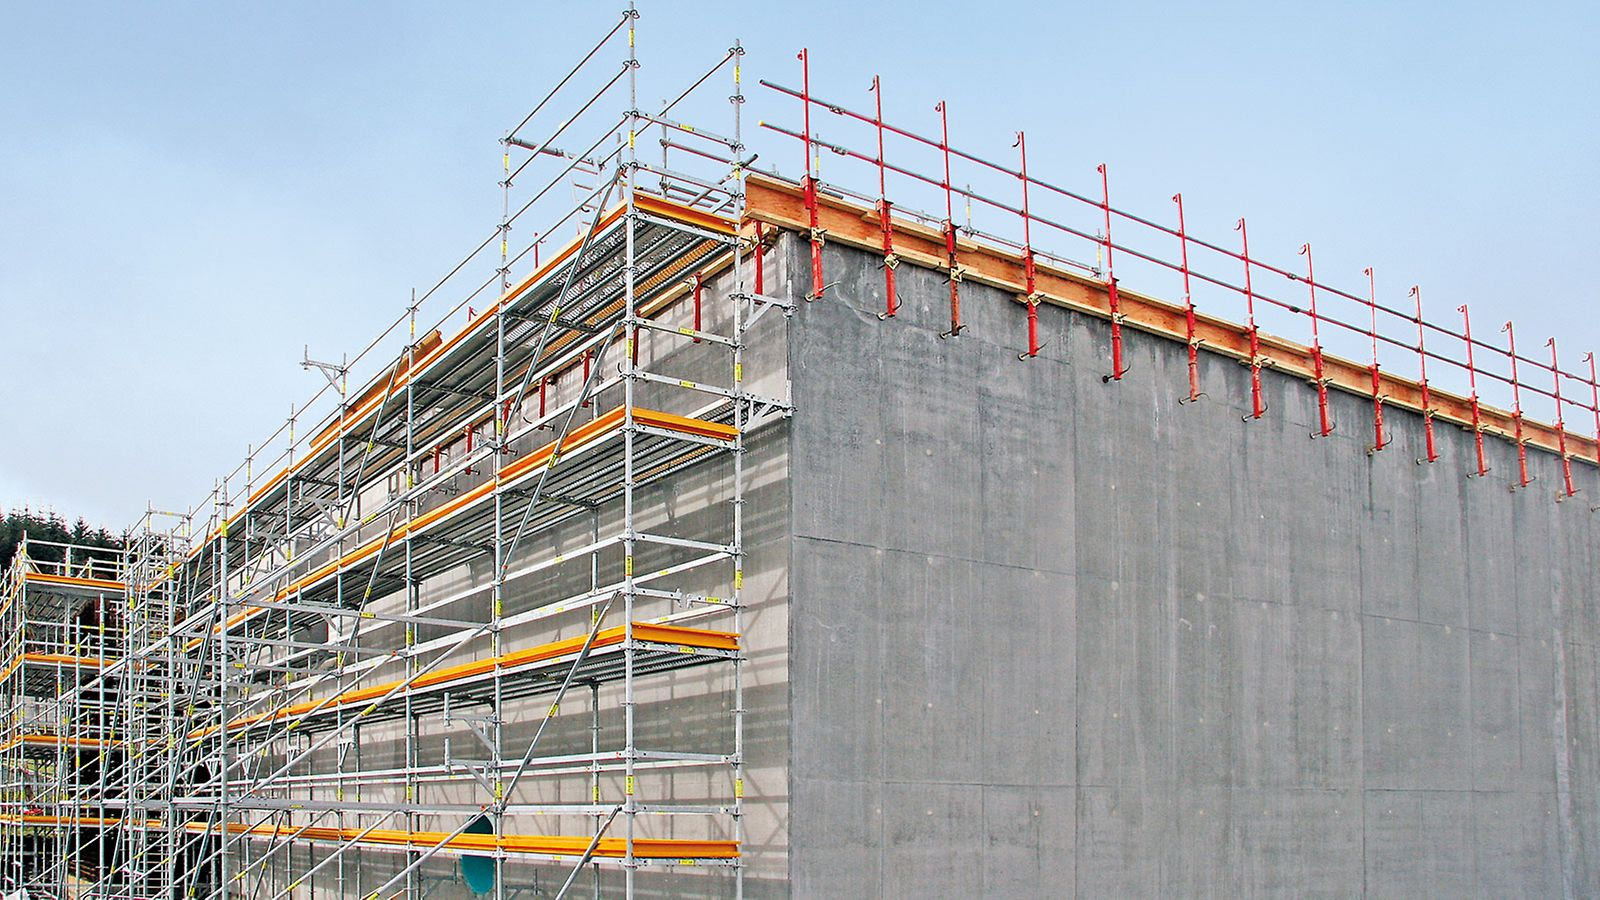 PERI UP Flex Modular Working Scaffold: The scaffolding width can be chosen freely selectable and can be adapted to meet a wide range of requirements.